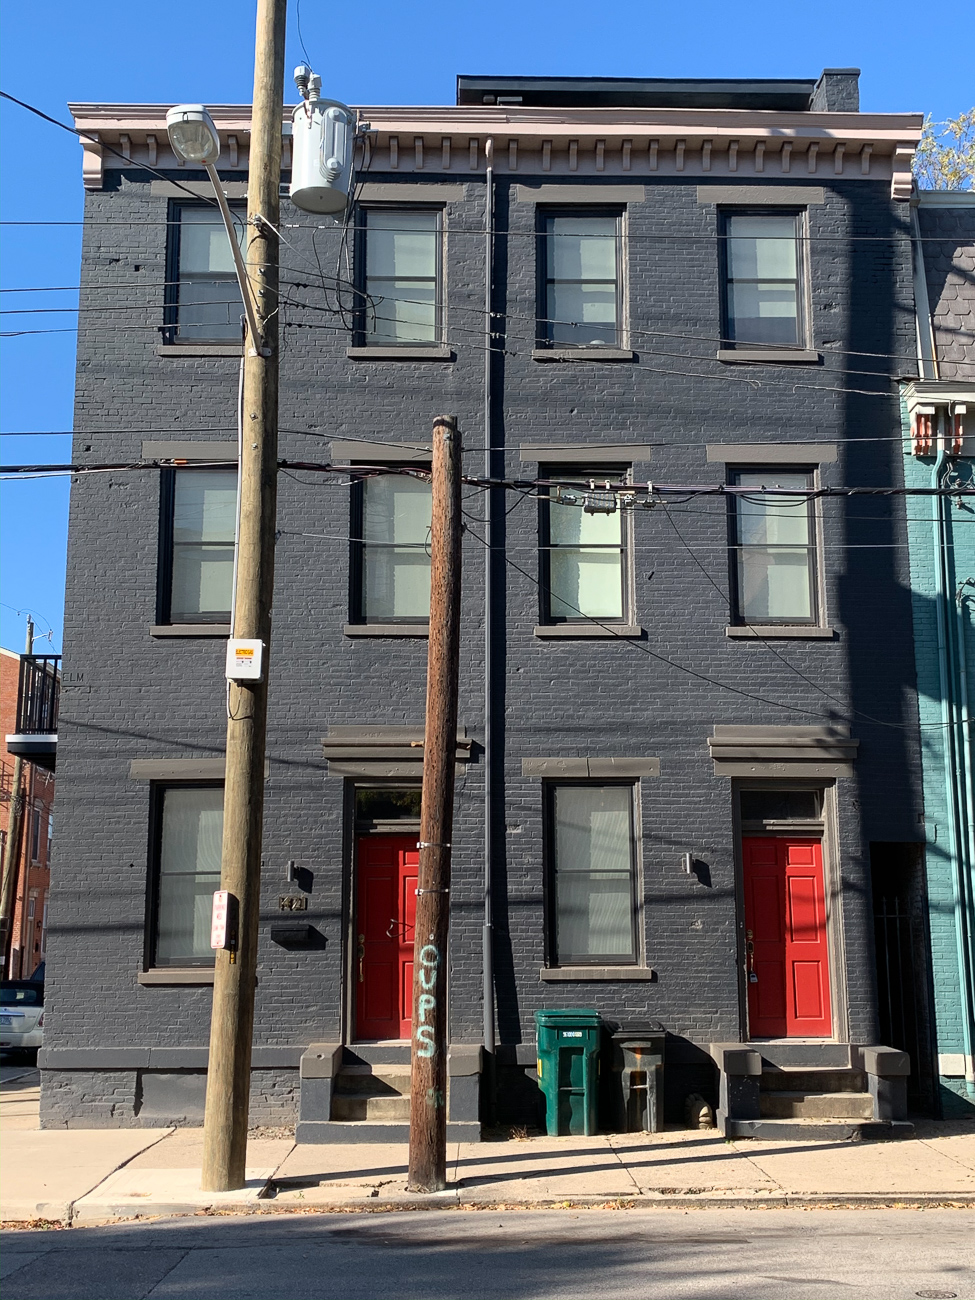 Over-the-Rhine has seen a lot of change in the last decade. Many vacant, historic buildings have received updates and are now occupied by businesses and residents alike. One building at the corner of Elm and Magnolia Streets was empty for nearly 20 years before it was purchased and renovated. 1421 Elm Street became the personal residence for Eric Haberthier and his family of four after construction finished. / Image: Phil Armstrong // Published: 12.6.19